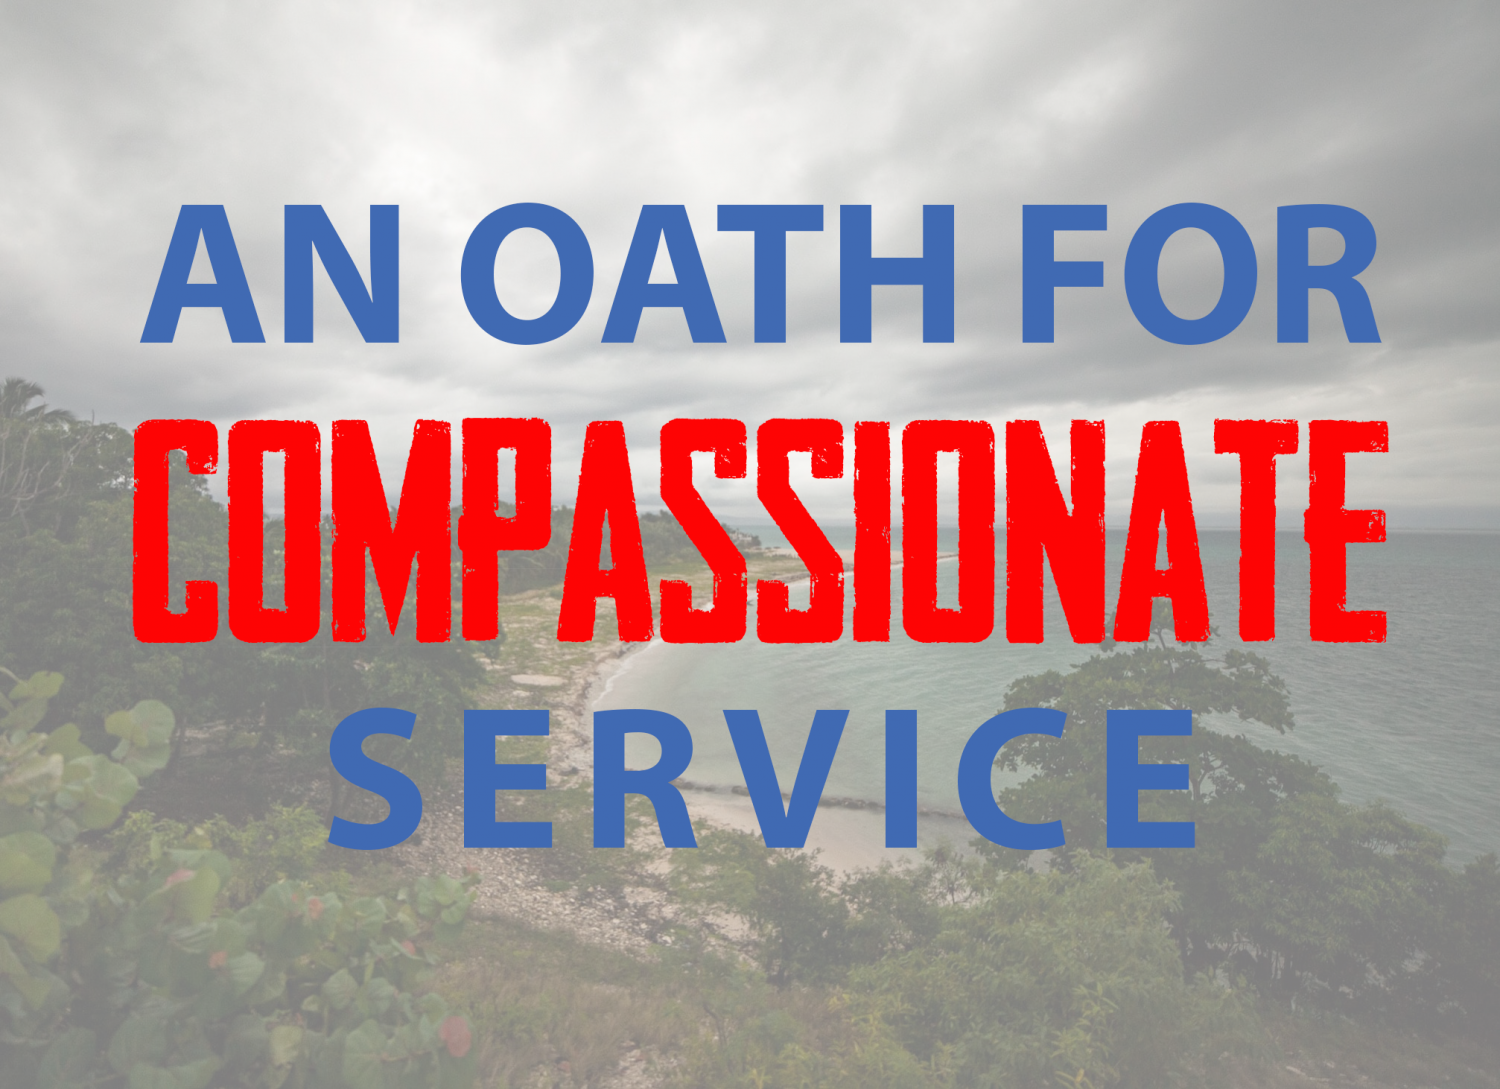 An Oath for Compassionate Service